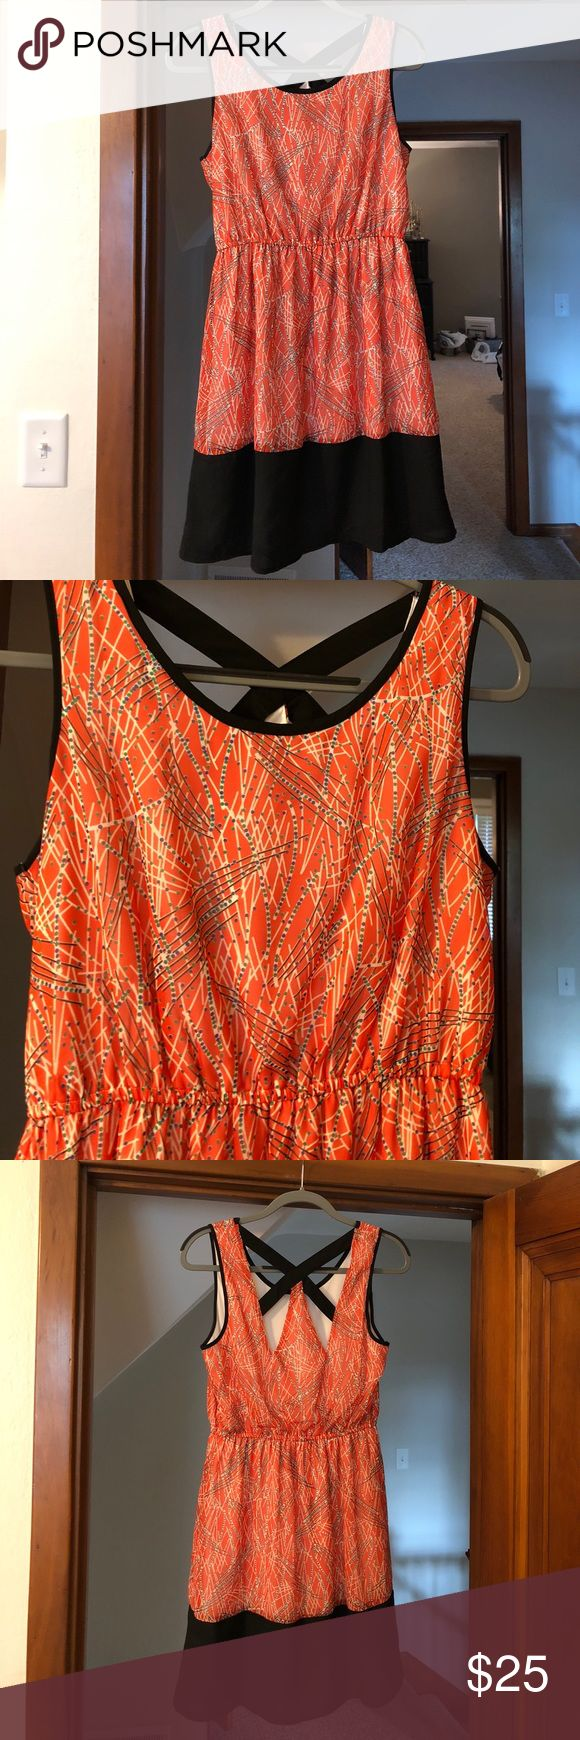 Summer dress with cool cutouts in back Bought from a boutique on Hilton Head Island. Tagged Francesca's because of the similar style & quality. Pretty orange with black accents. Really fun cutouts in back. Haven't worn in too long so I am looking to sell, nothing wrong with it. Same/ext day shipping 📦 make me an offer Francesca's Collections Dresses Mini